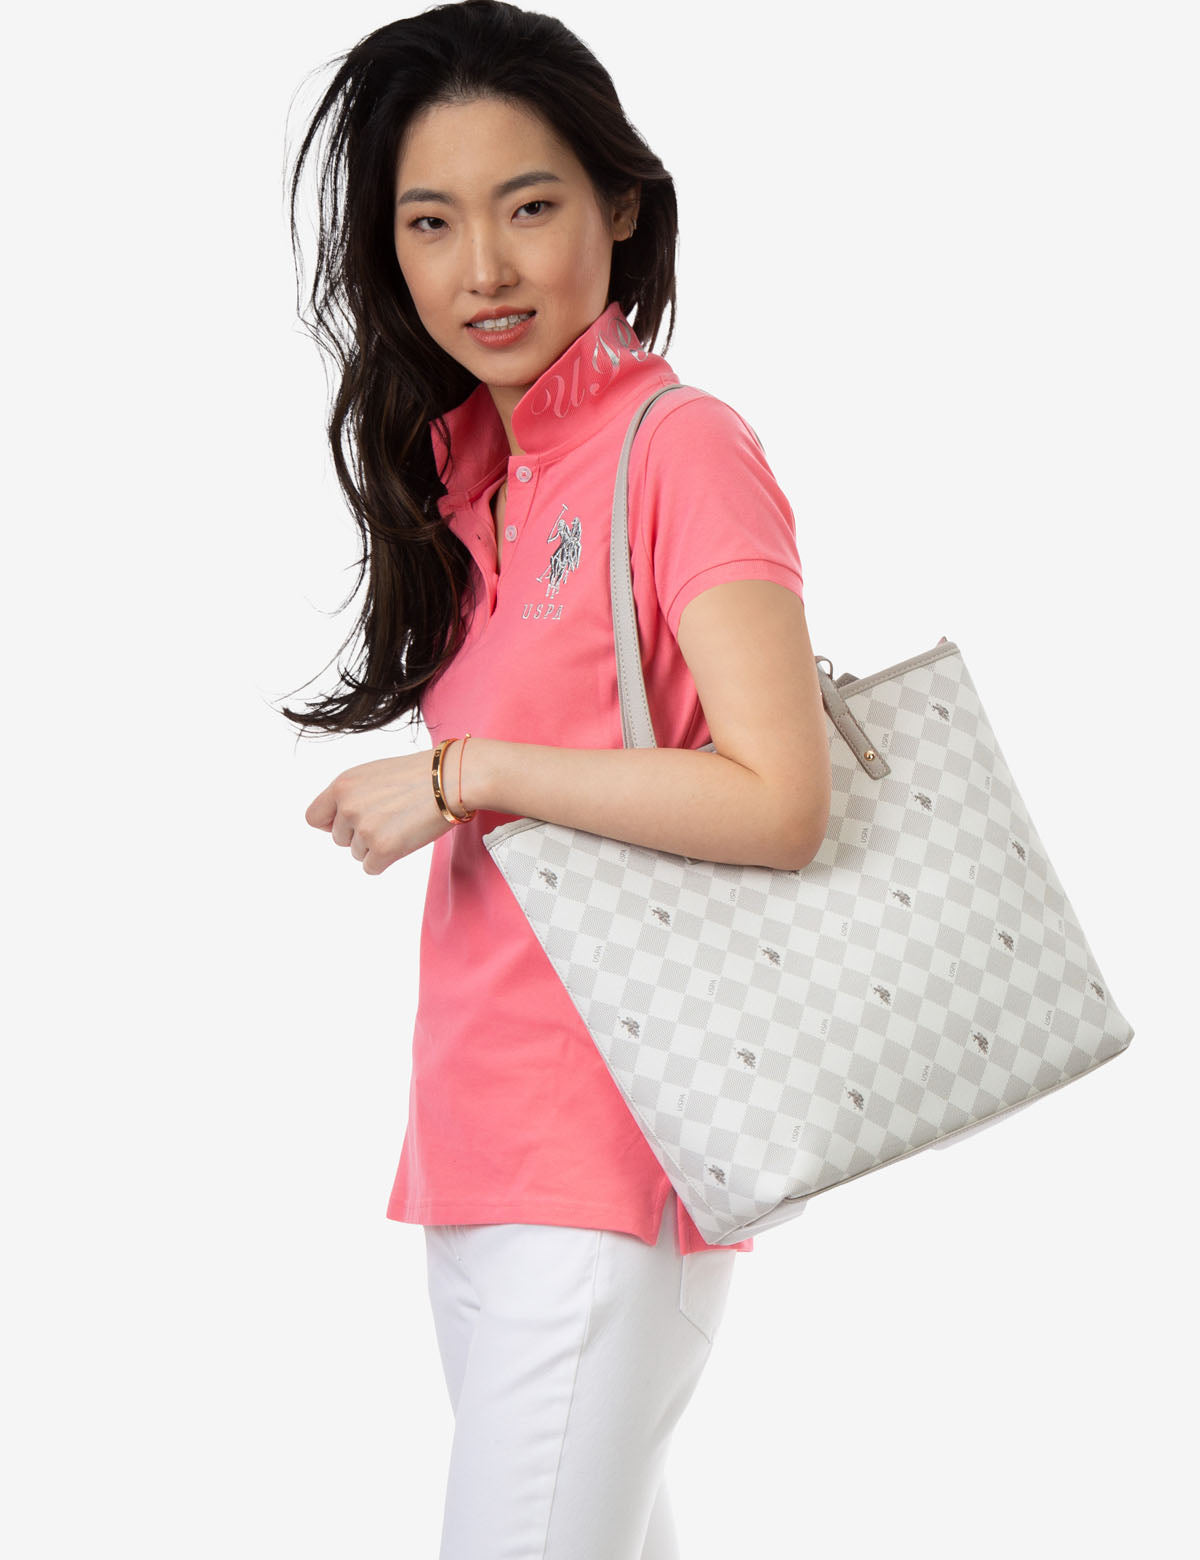 DIAMOND SIGNATURE TOTE BAG - U.S. Polo Assn.